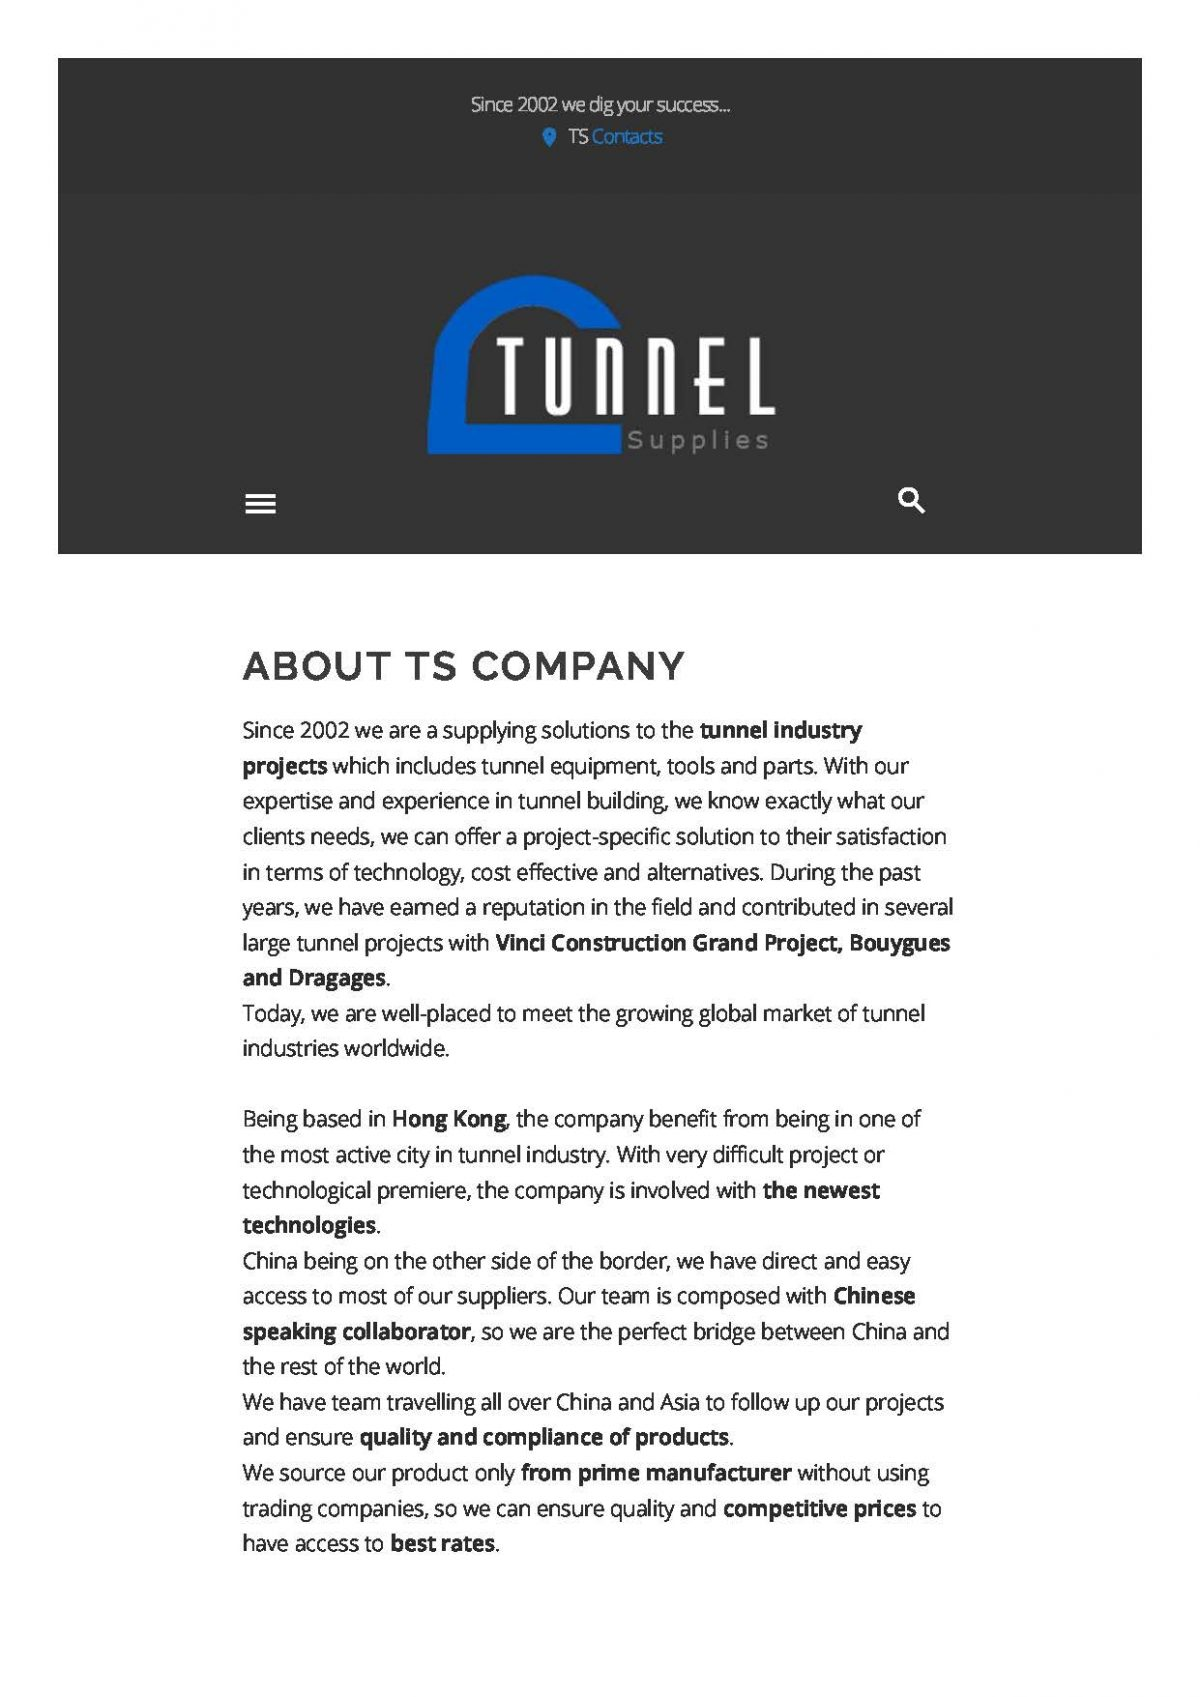 01-TUNNEL SUPPLIES _ MainPage_Page_1